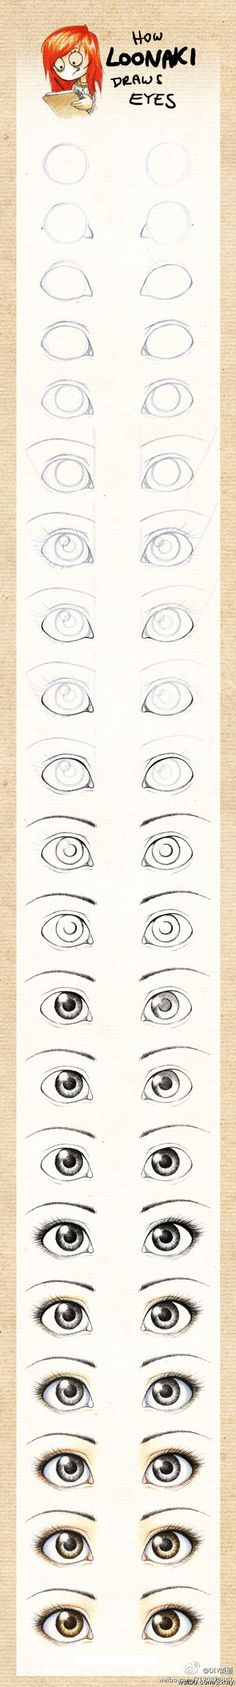 Eye Drawing : Step by step